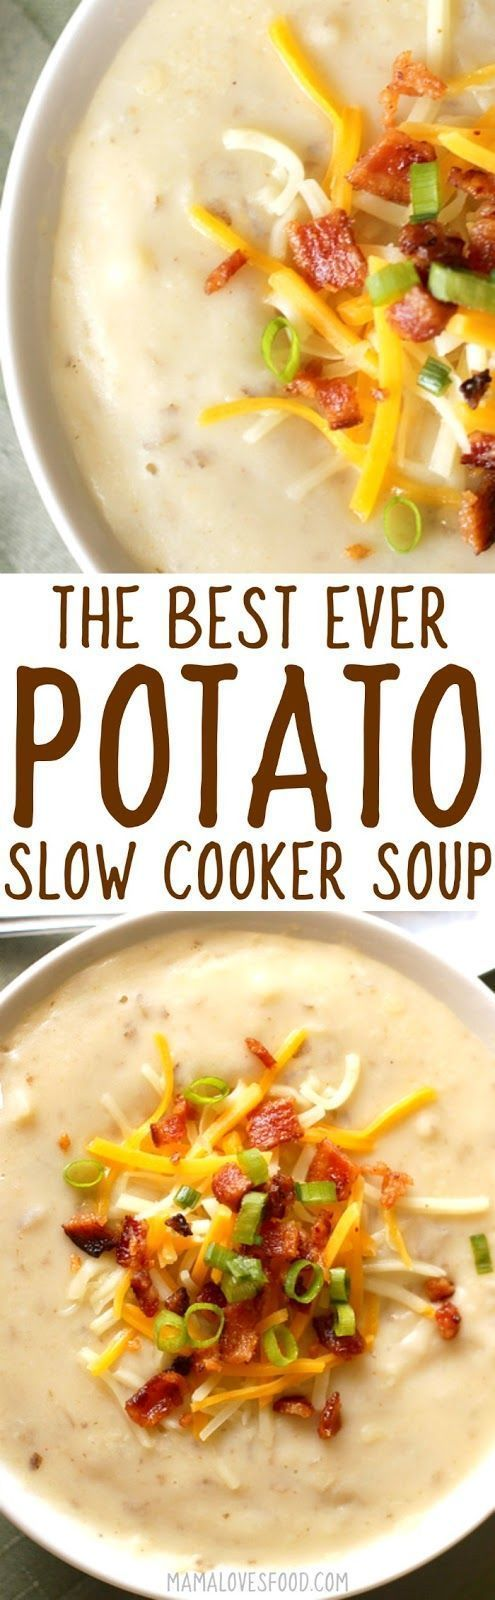 huge hit!!! will make again :-) Loaded Baked Potato Soup Recipe - How to Make Slow Cooker Crock Pot Style Creamy Potato Soup